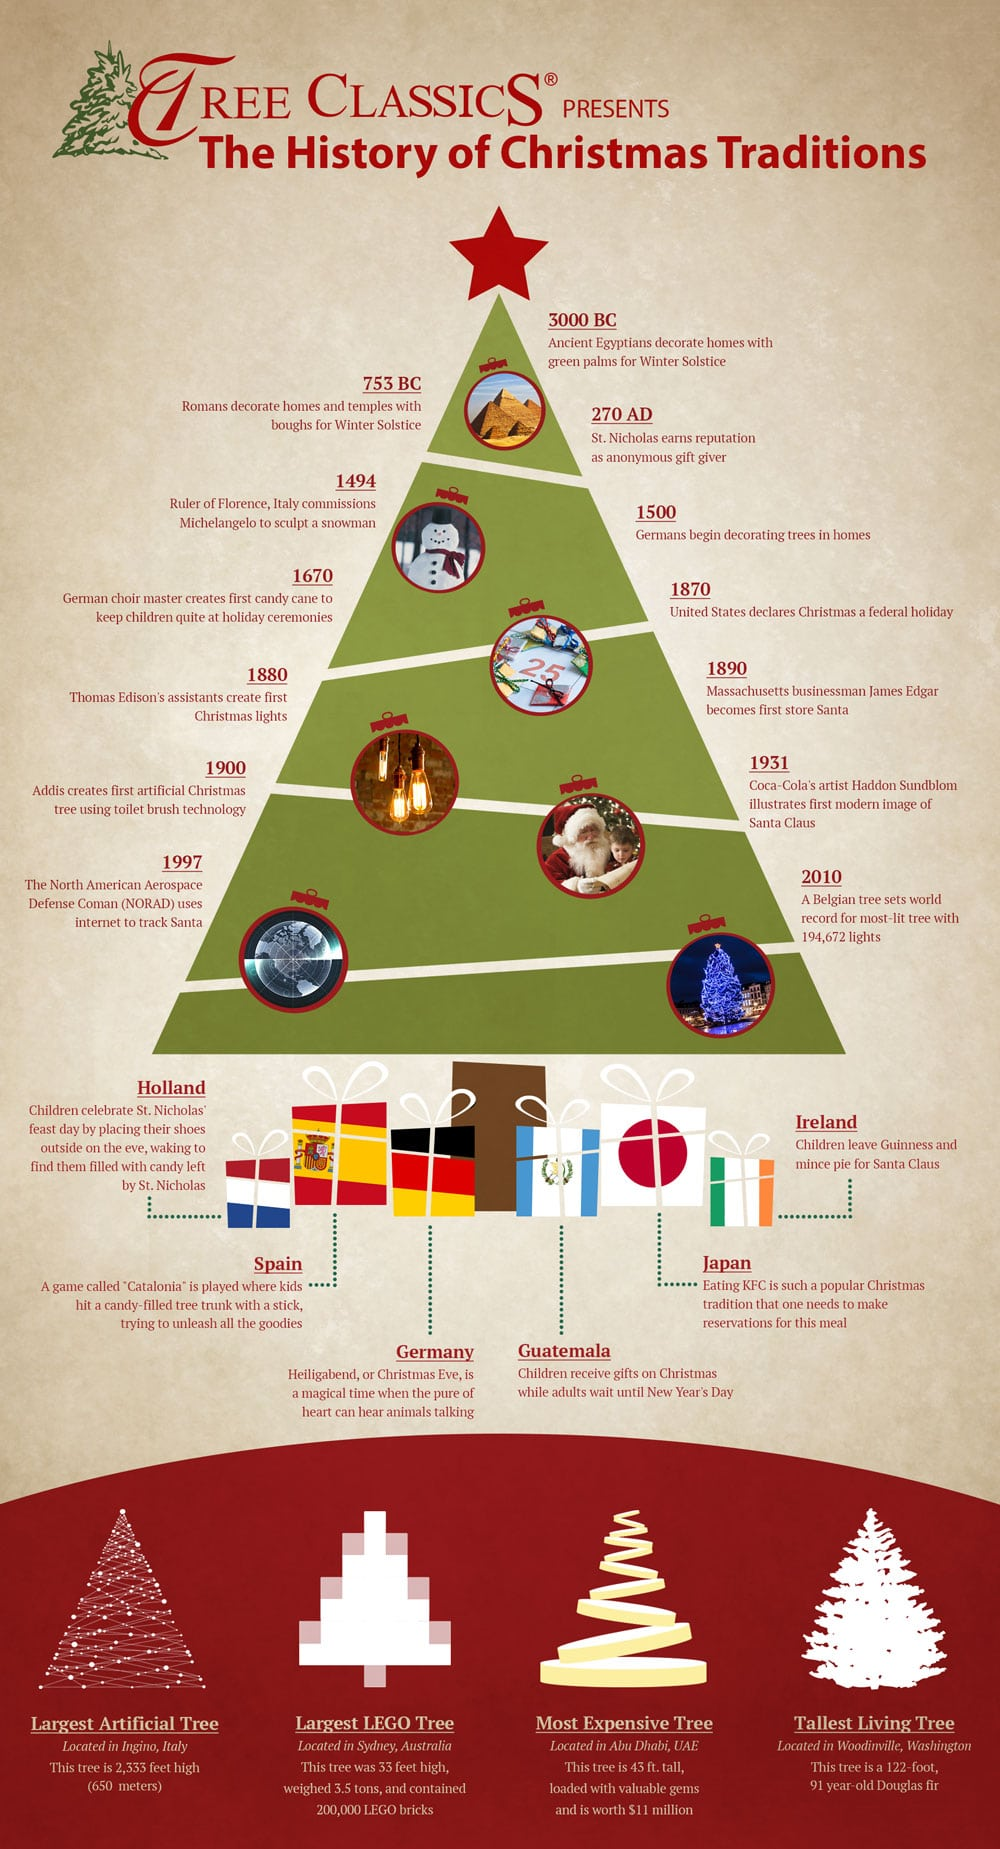 The History of Christmas Trees & Other Christmas Traditions